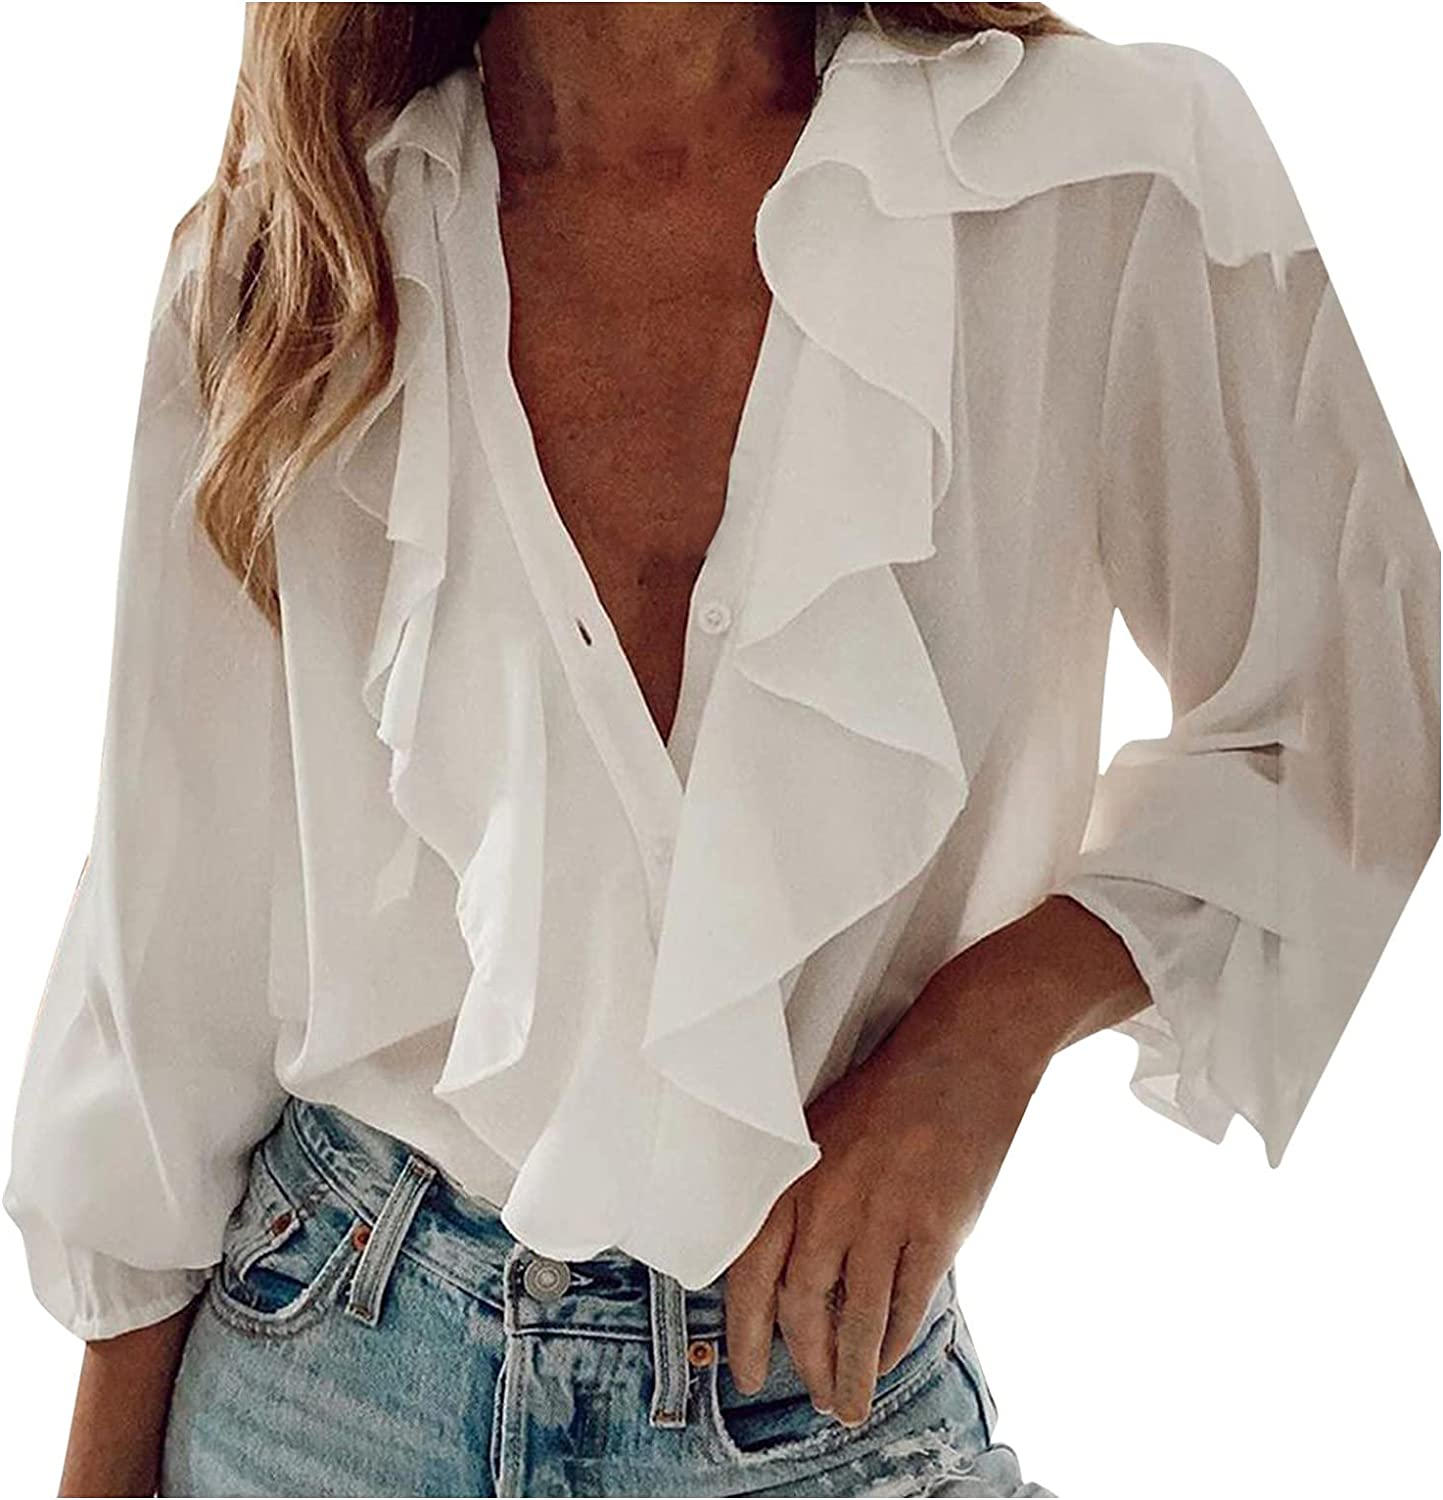 Women's Plus Size Off The Shoulder Tops Embroidery Long Sleeve Tunic Tops Blouses Tops Fall Chiffon Shirts Blouse